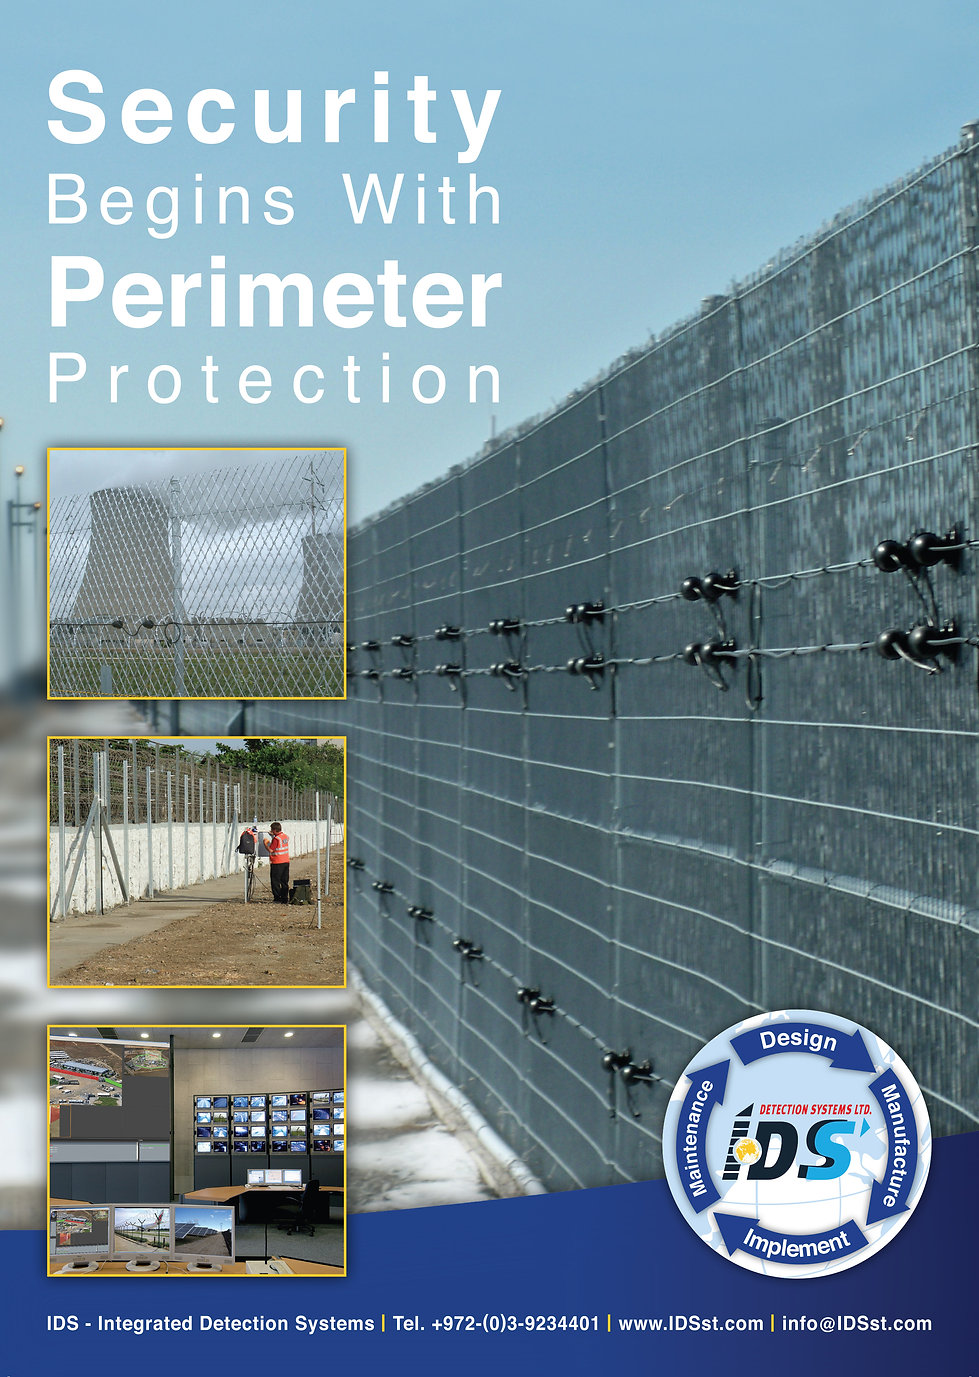 IDS- Security Begins With Perimeter Protection